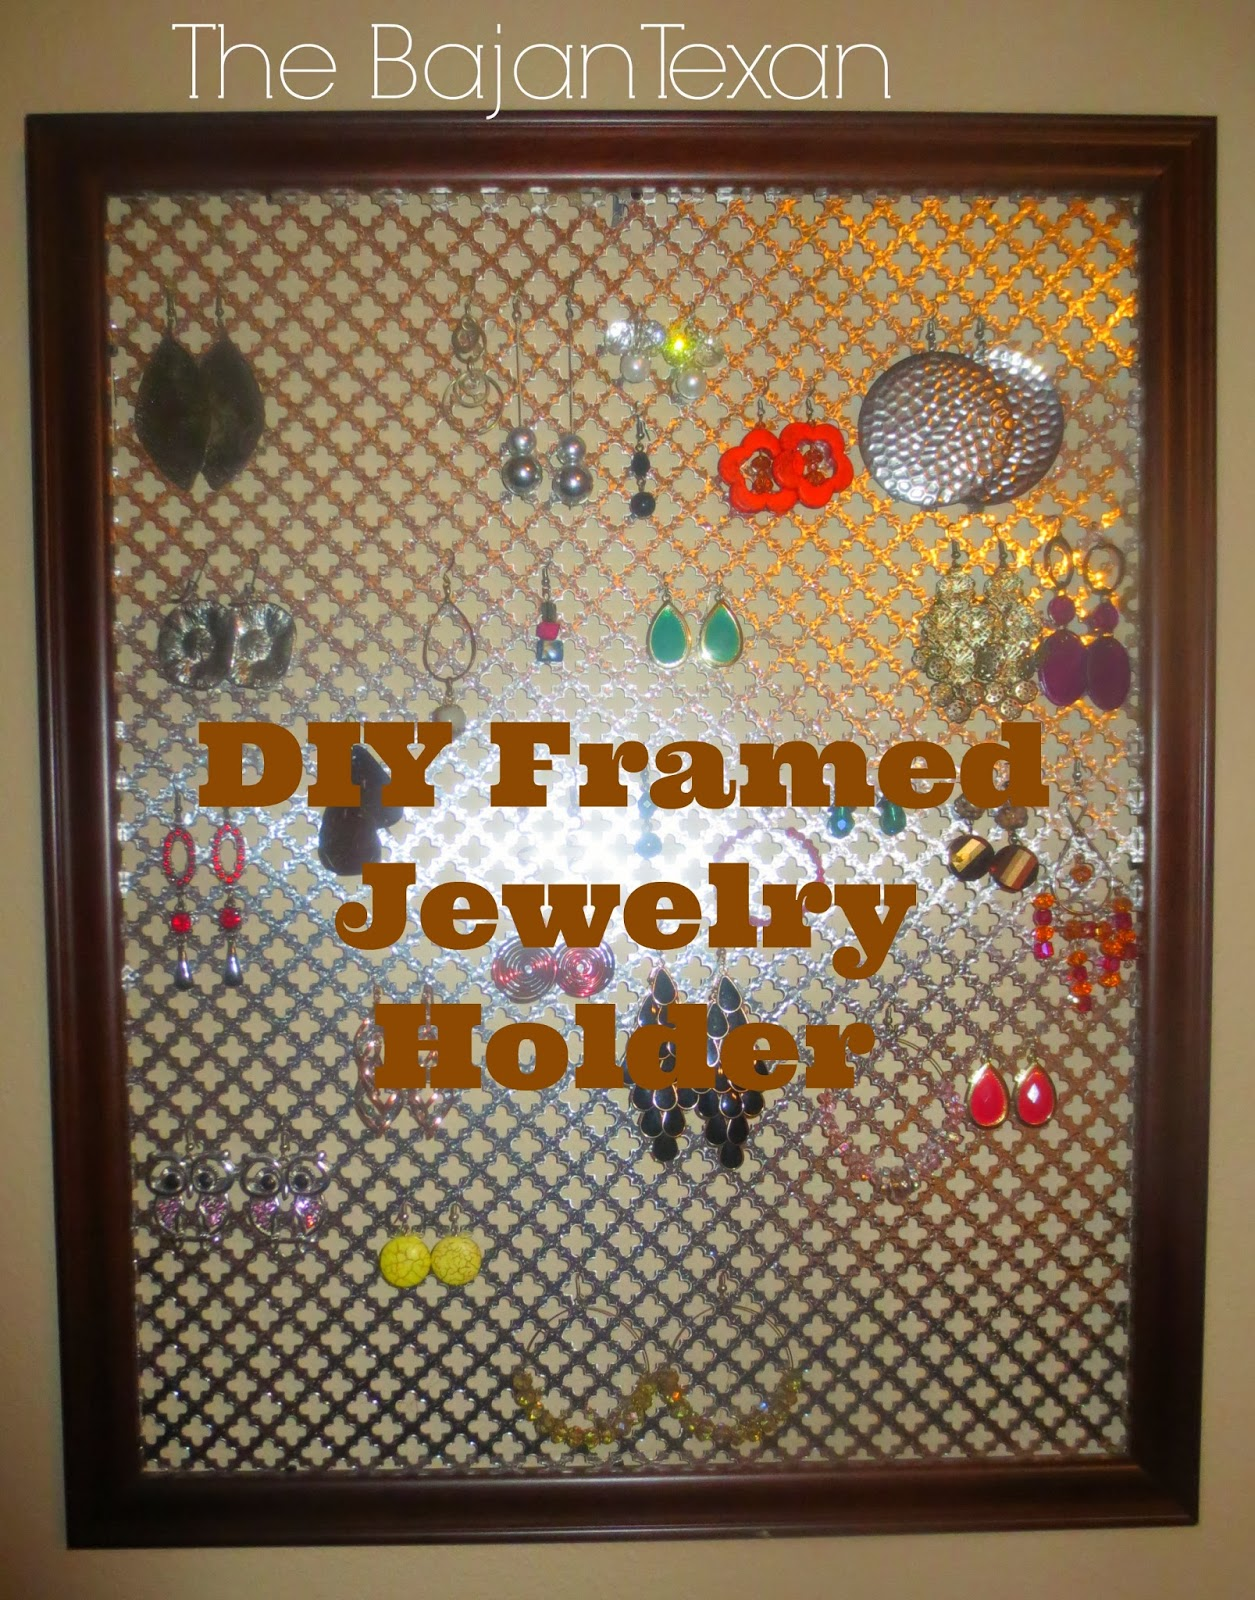 DIY Framed Jewelry Holder The easiest project ever The Bajan Texan